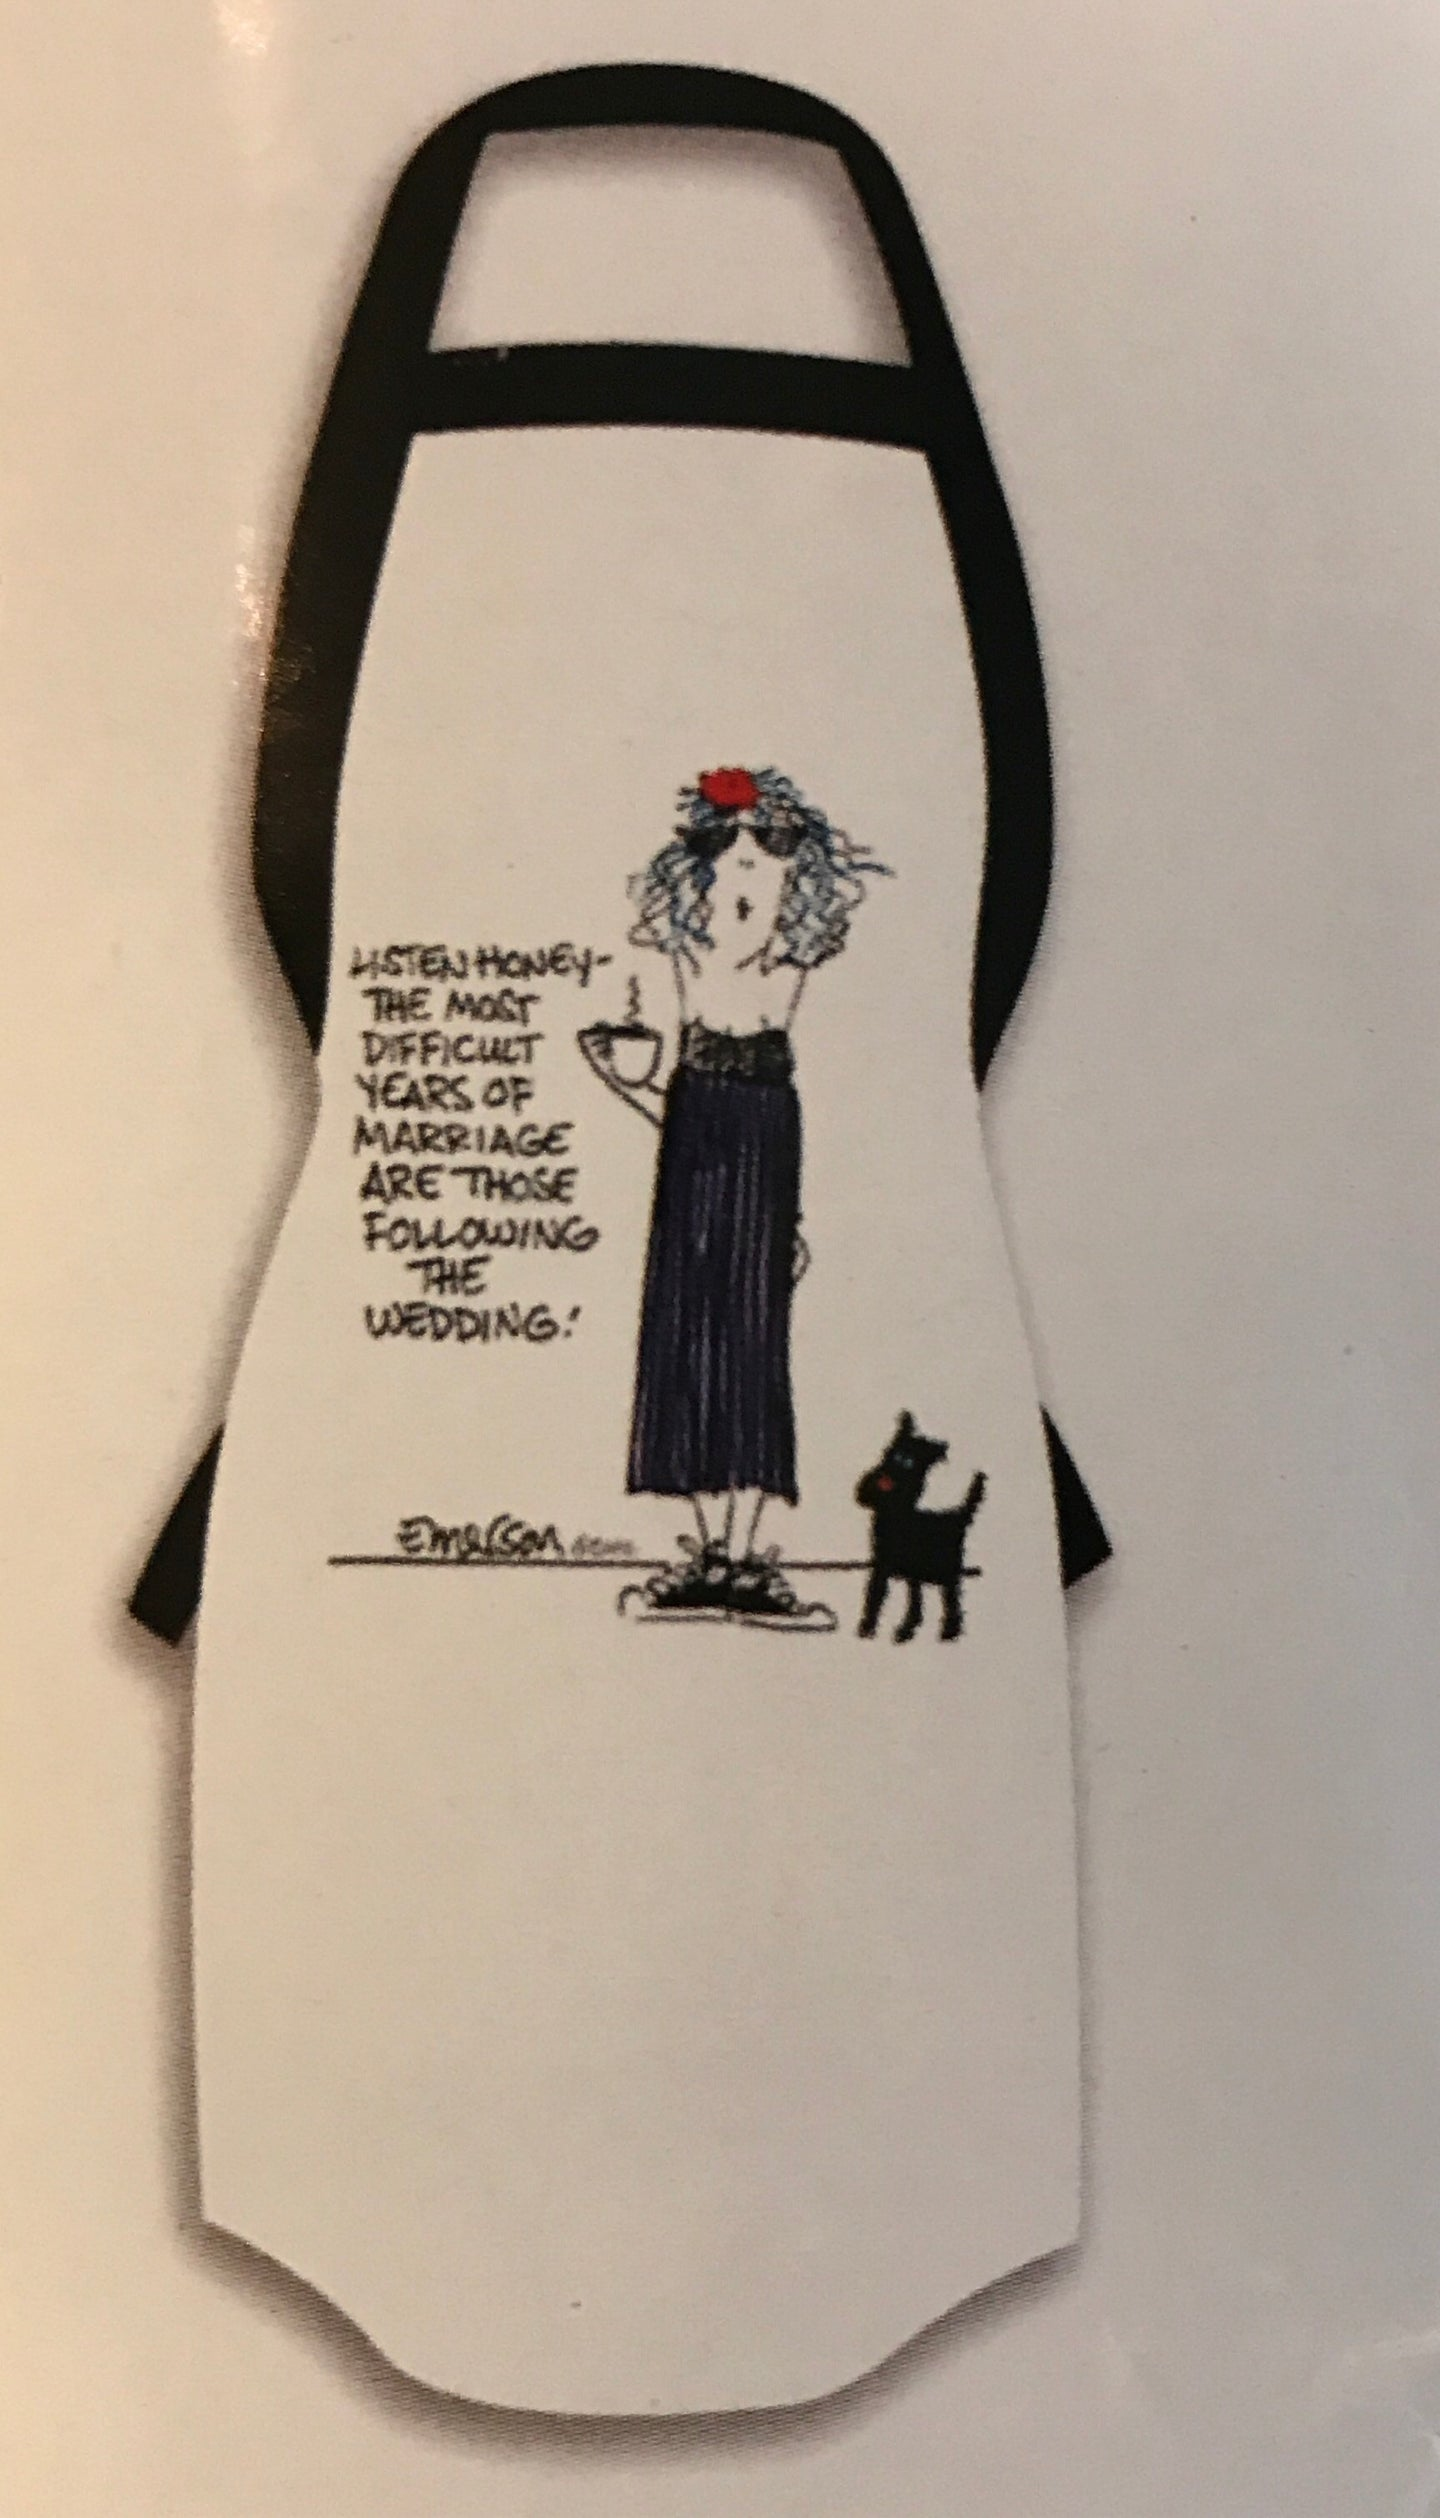 The Most Difficult Years Apron